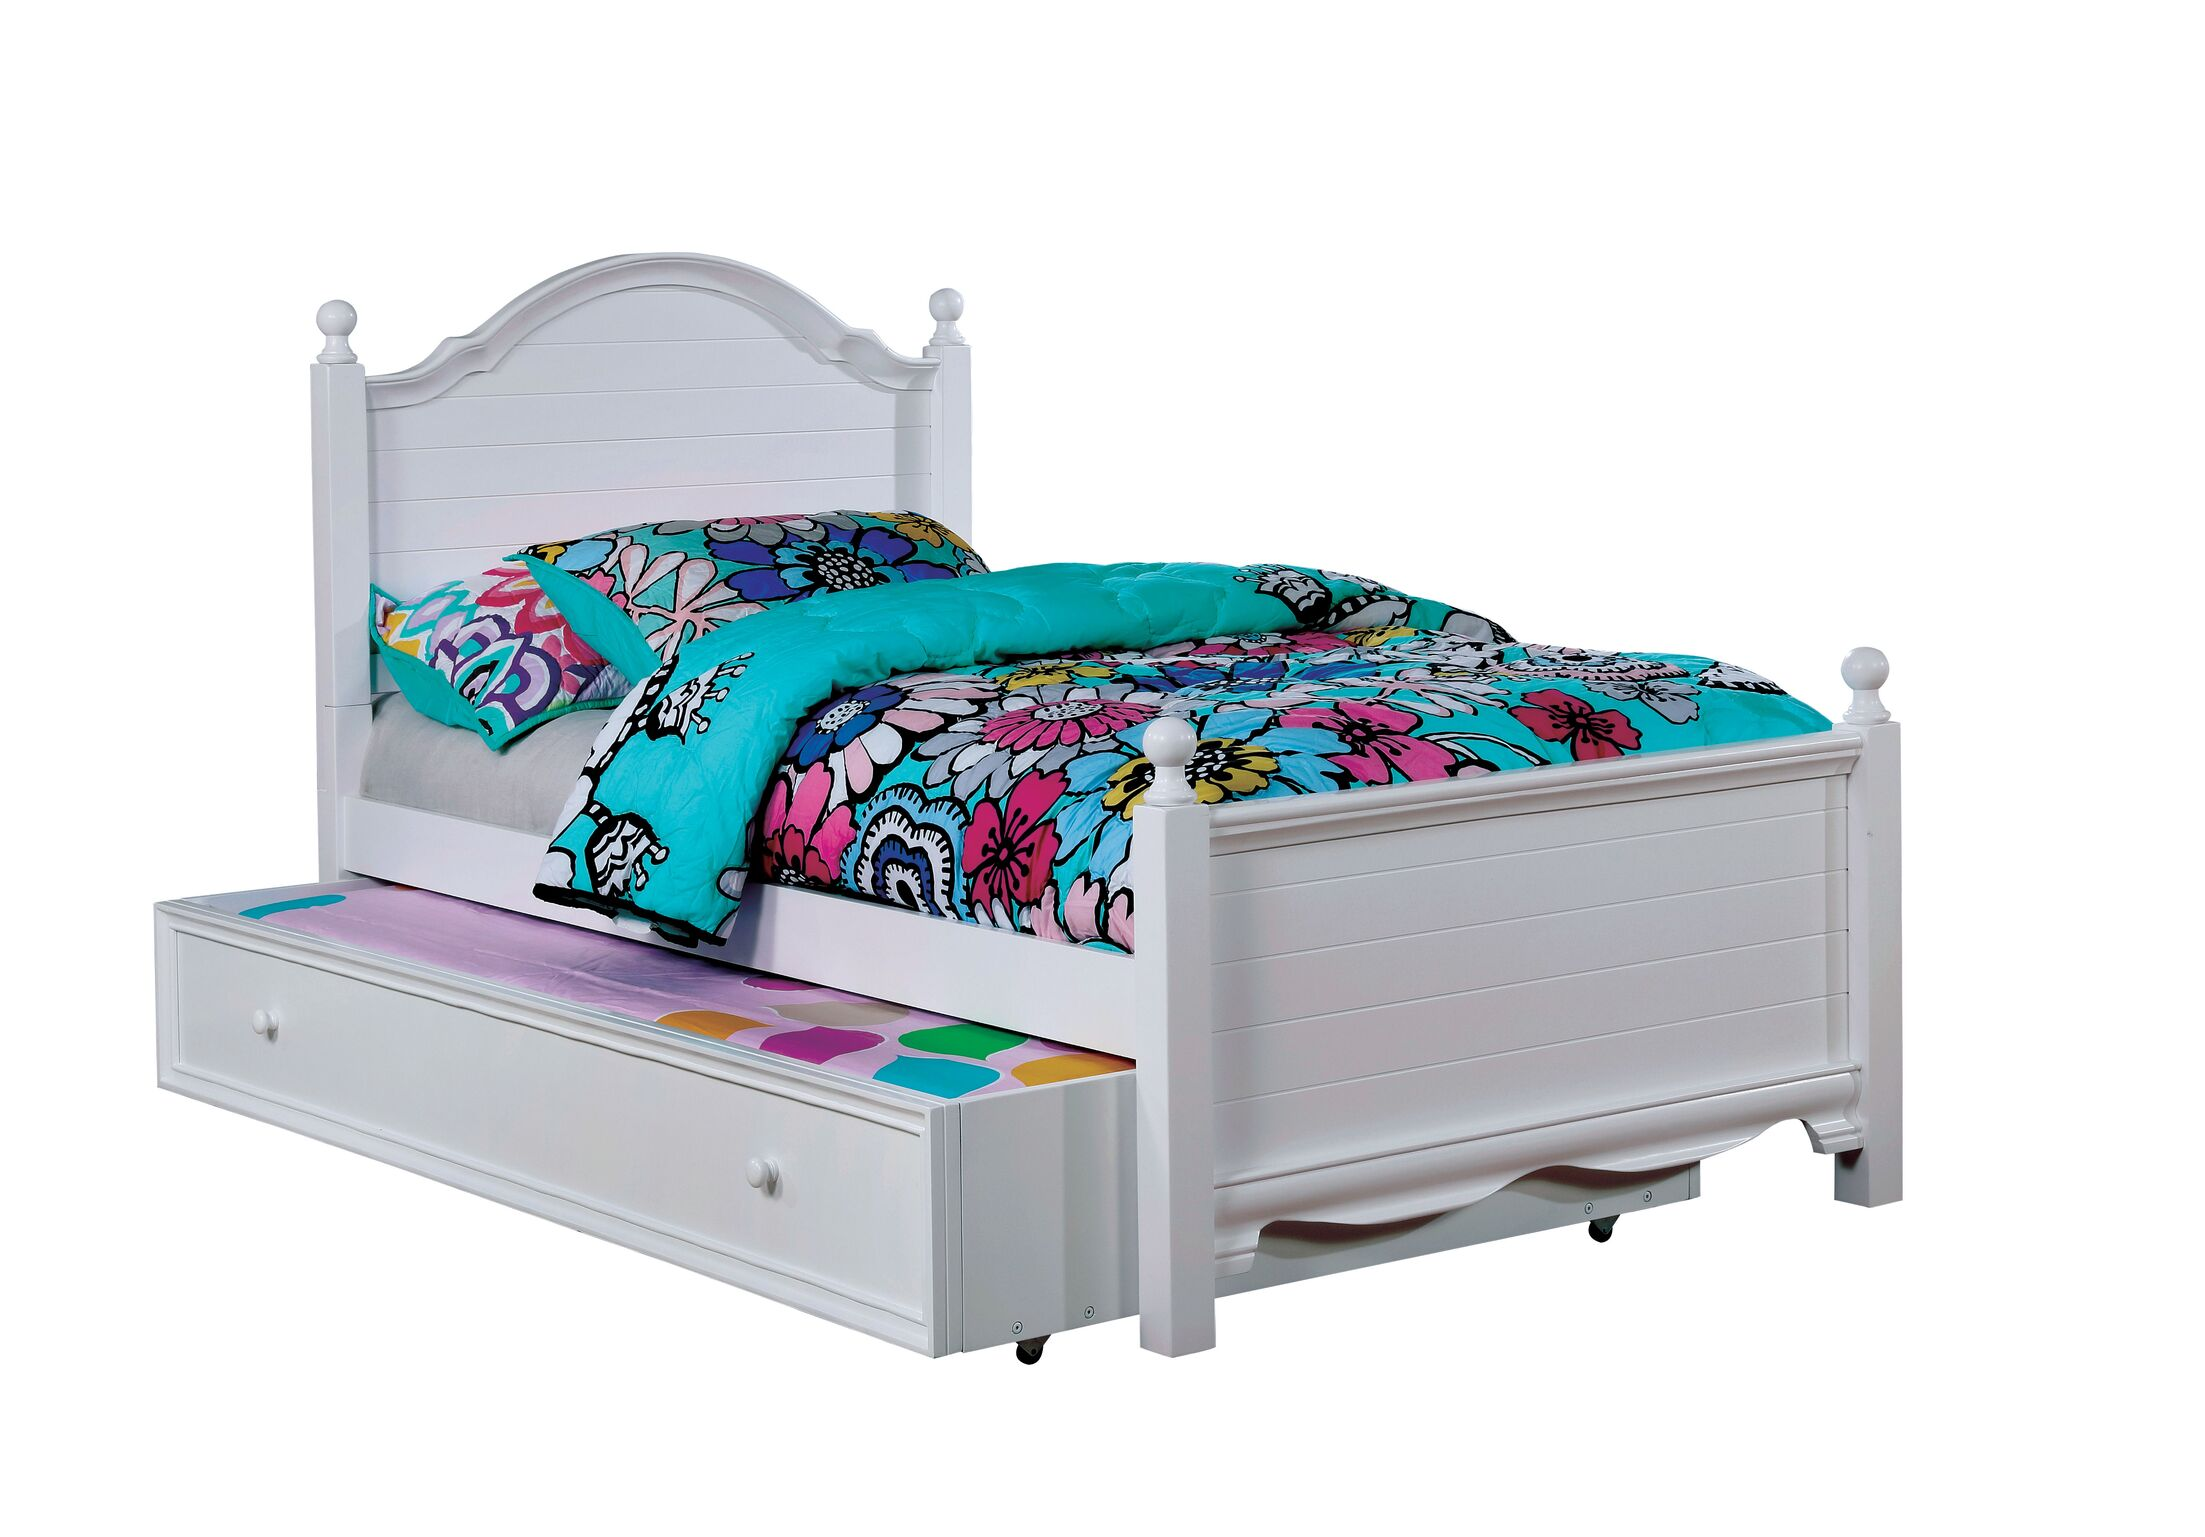 Contemporary Trundle Unit and Side Rail Bed Frame Color: White, Size: Twin